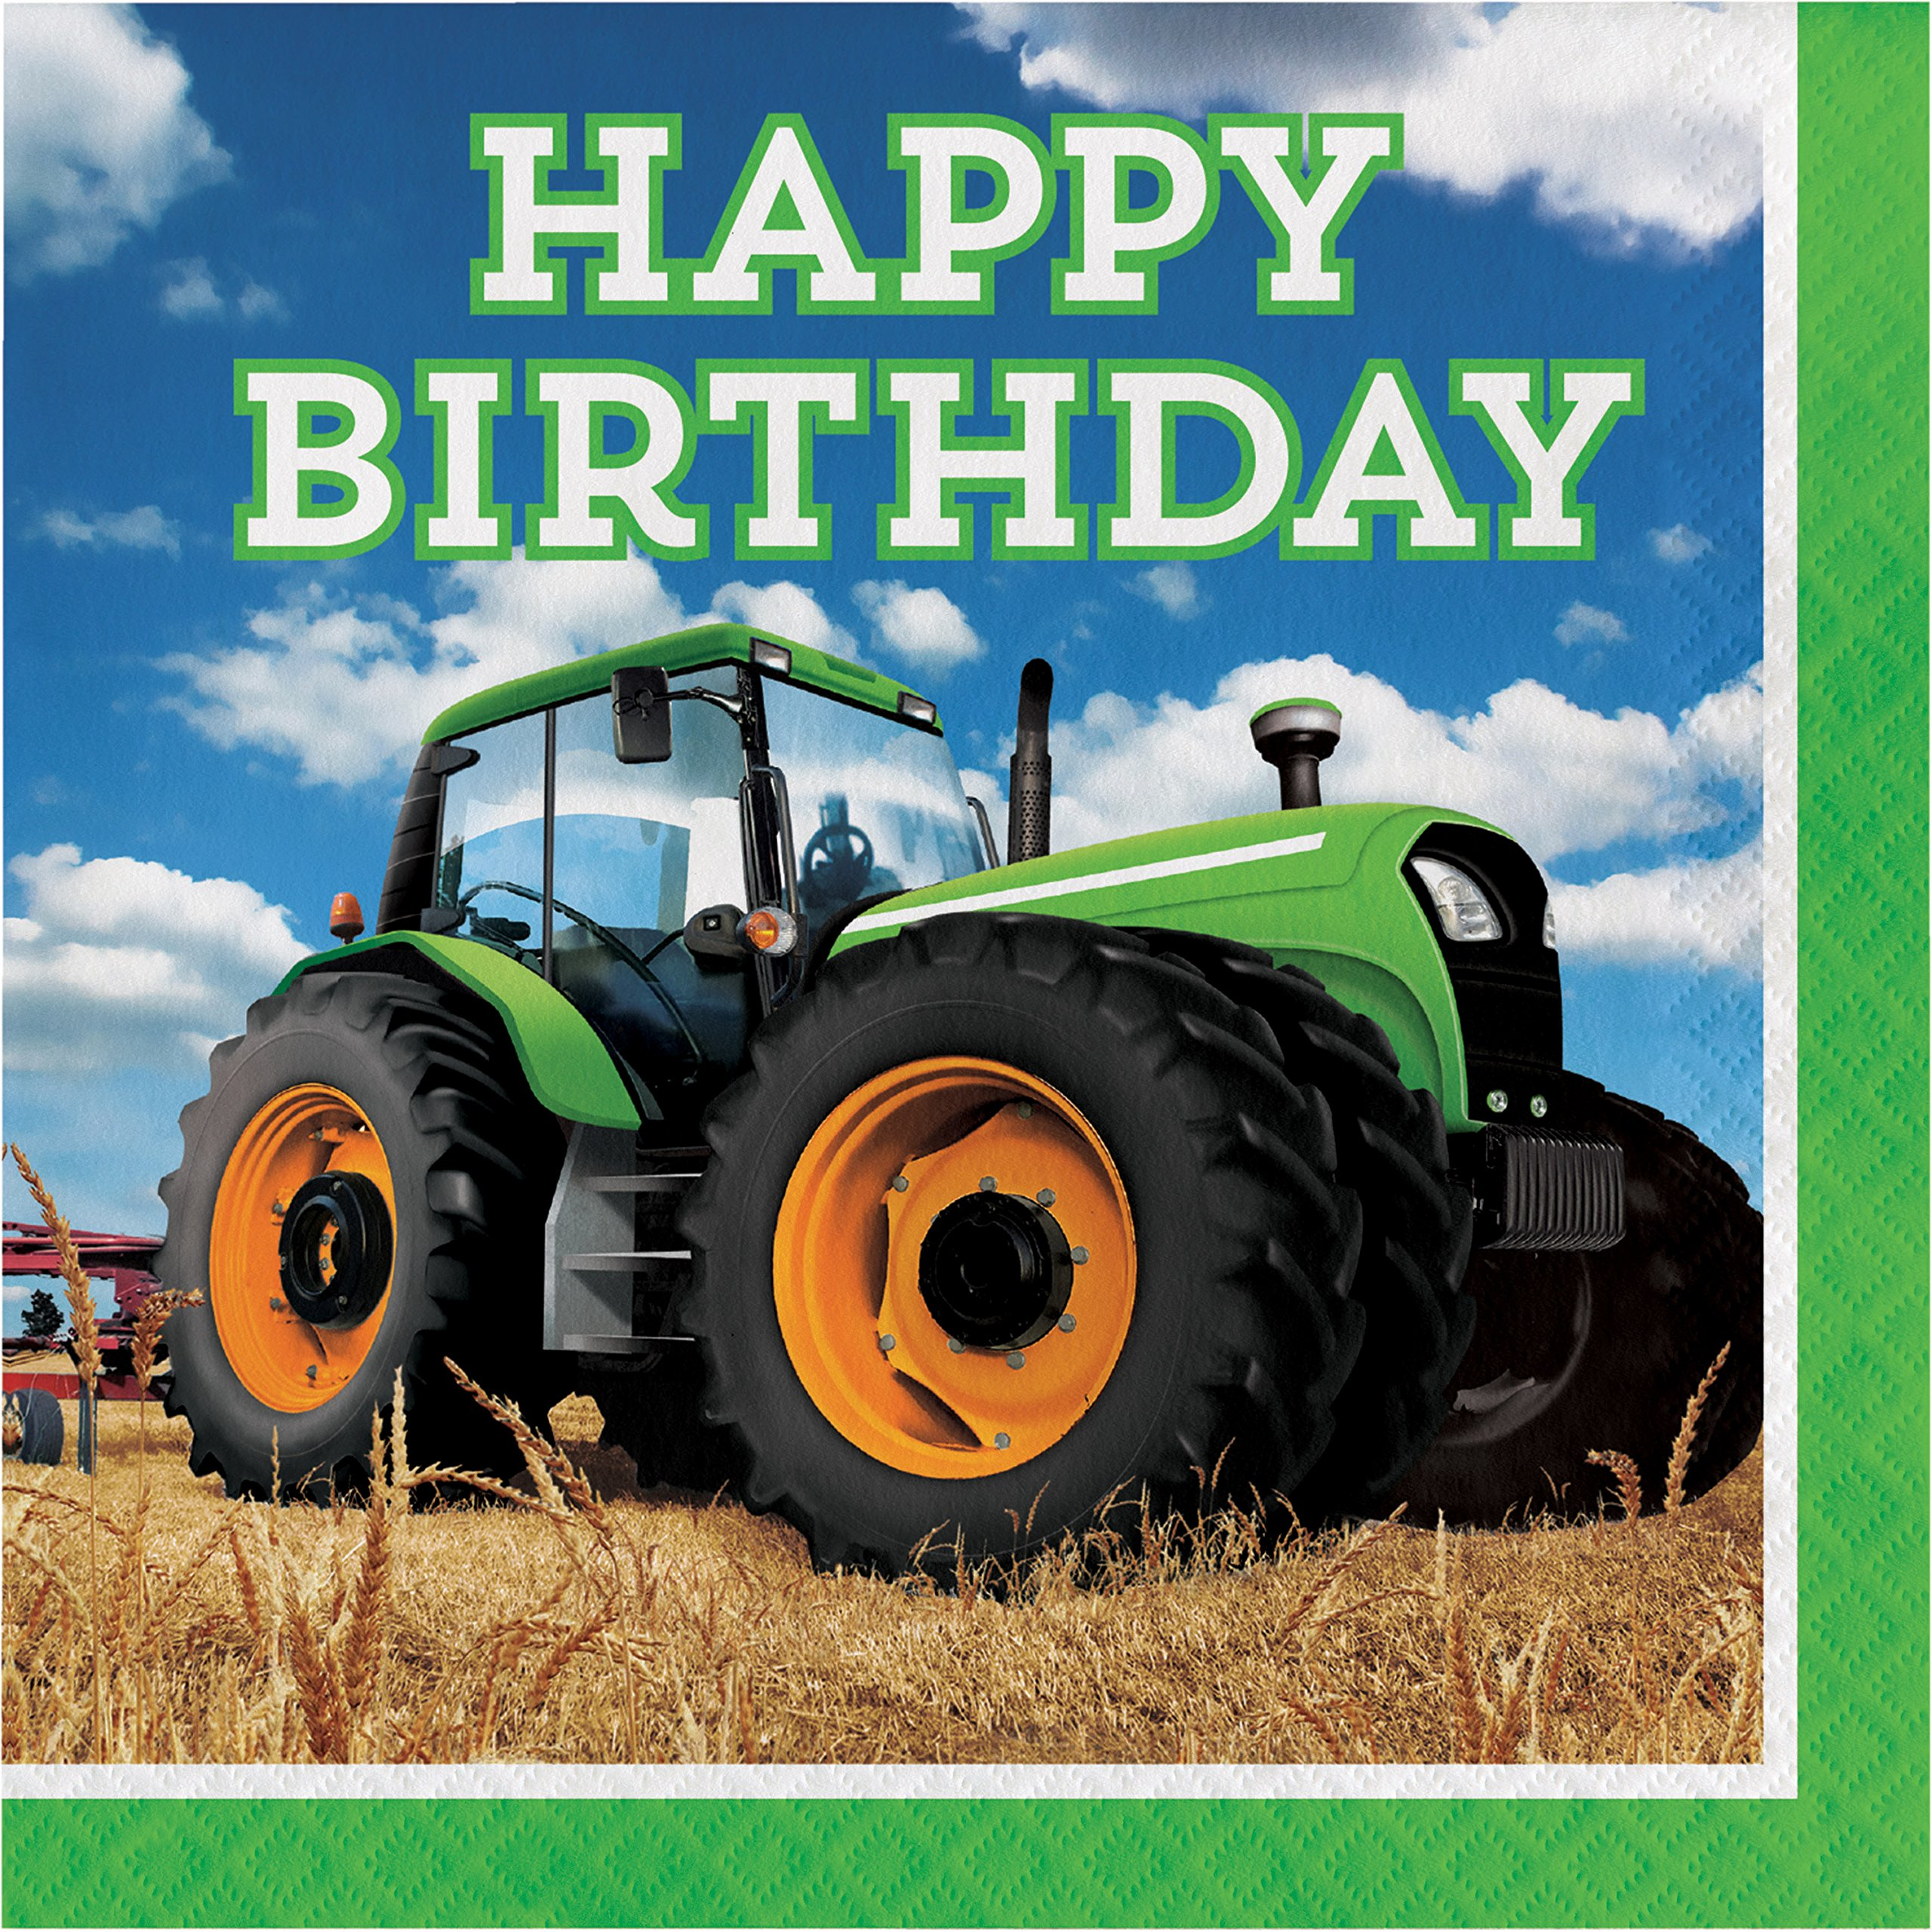 Tractor Time Birthday Napkins, 48 ct by Creative Converting